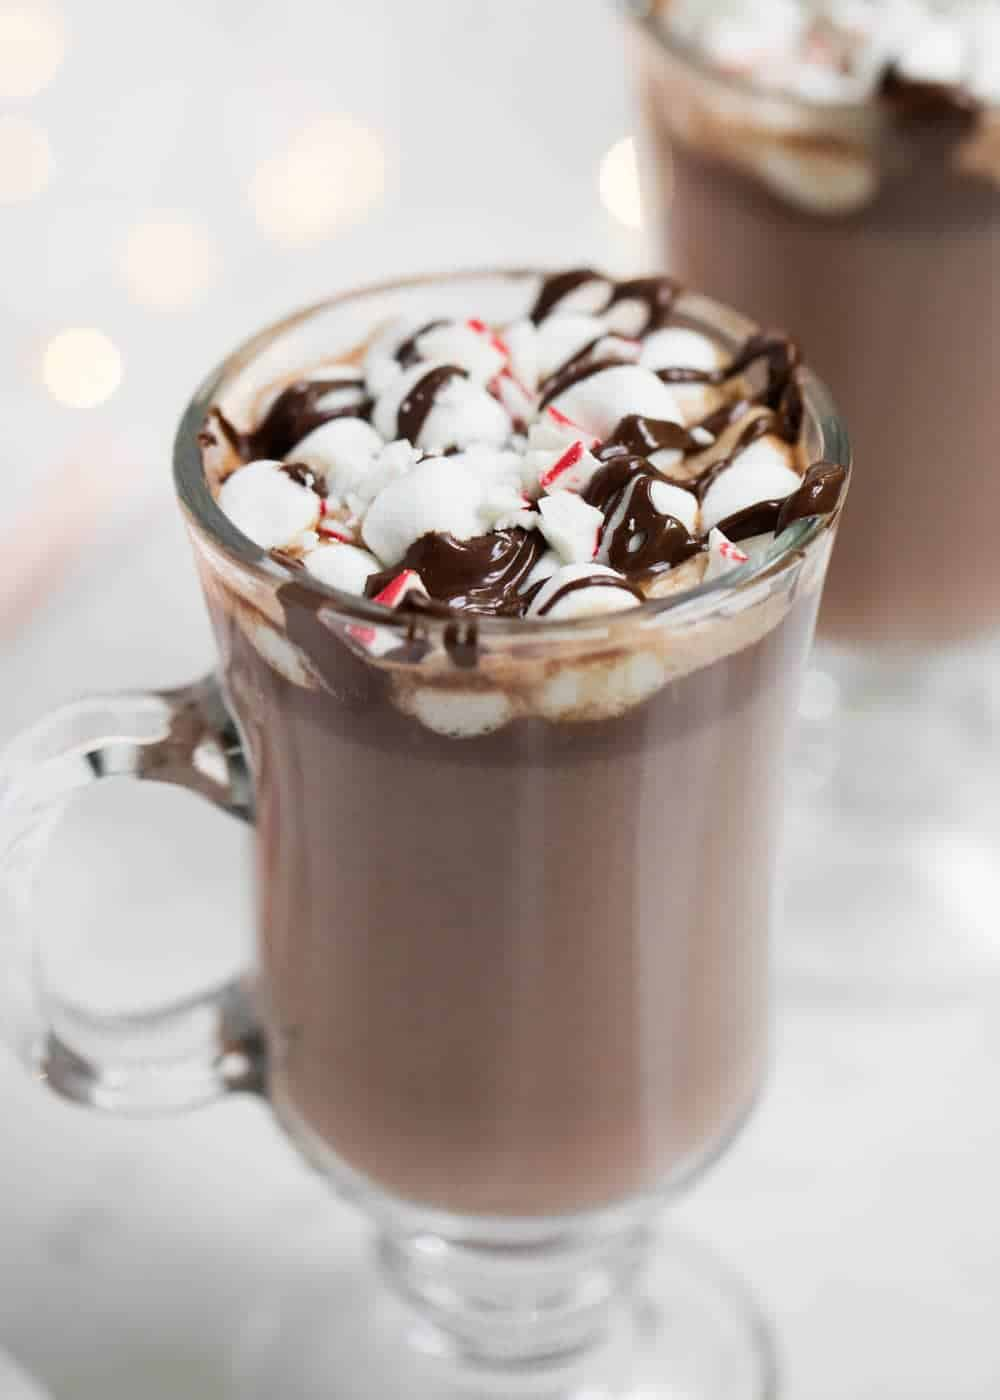 5 Ingredient Homemade Hot Chocolate I Heart Naptime